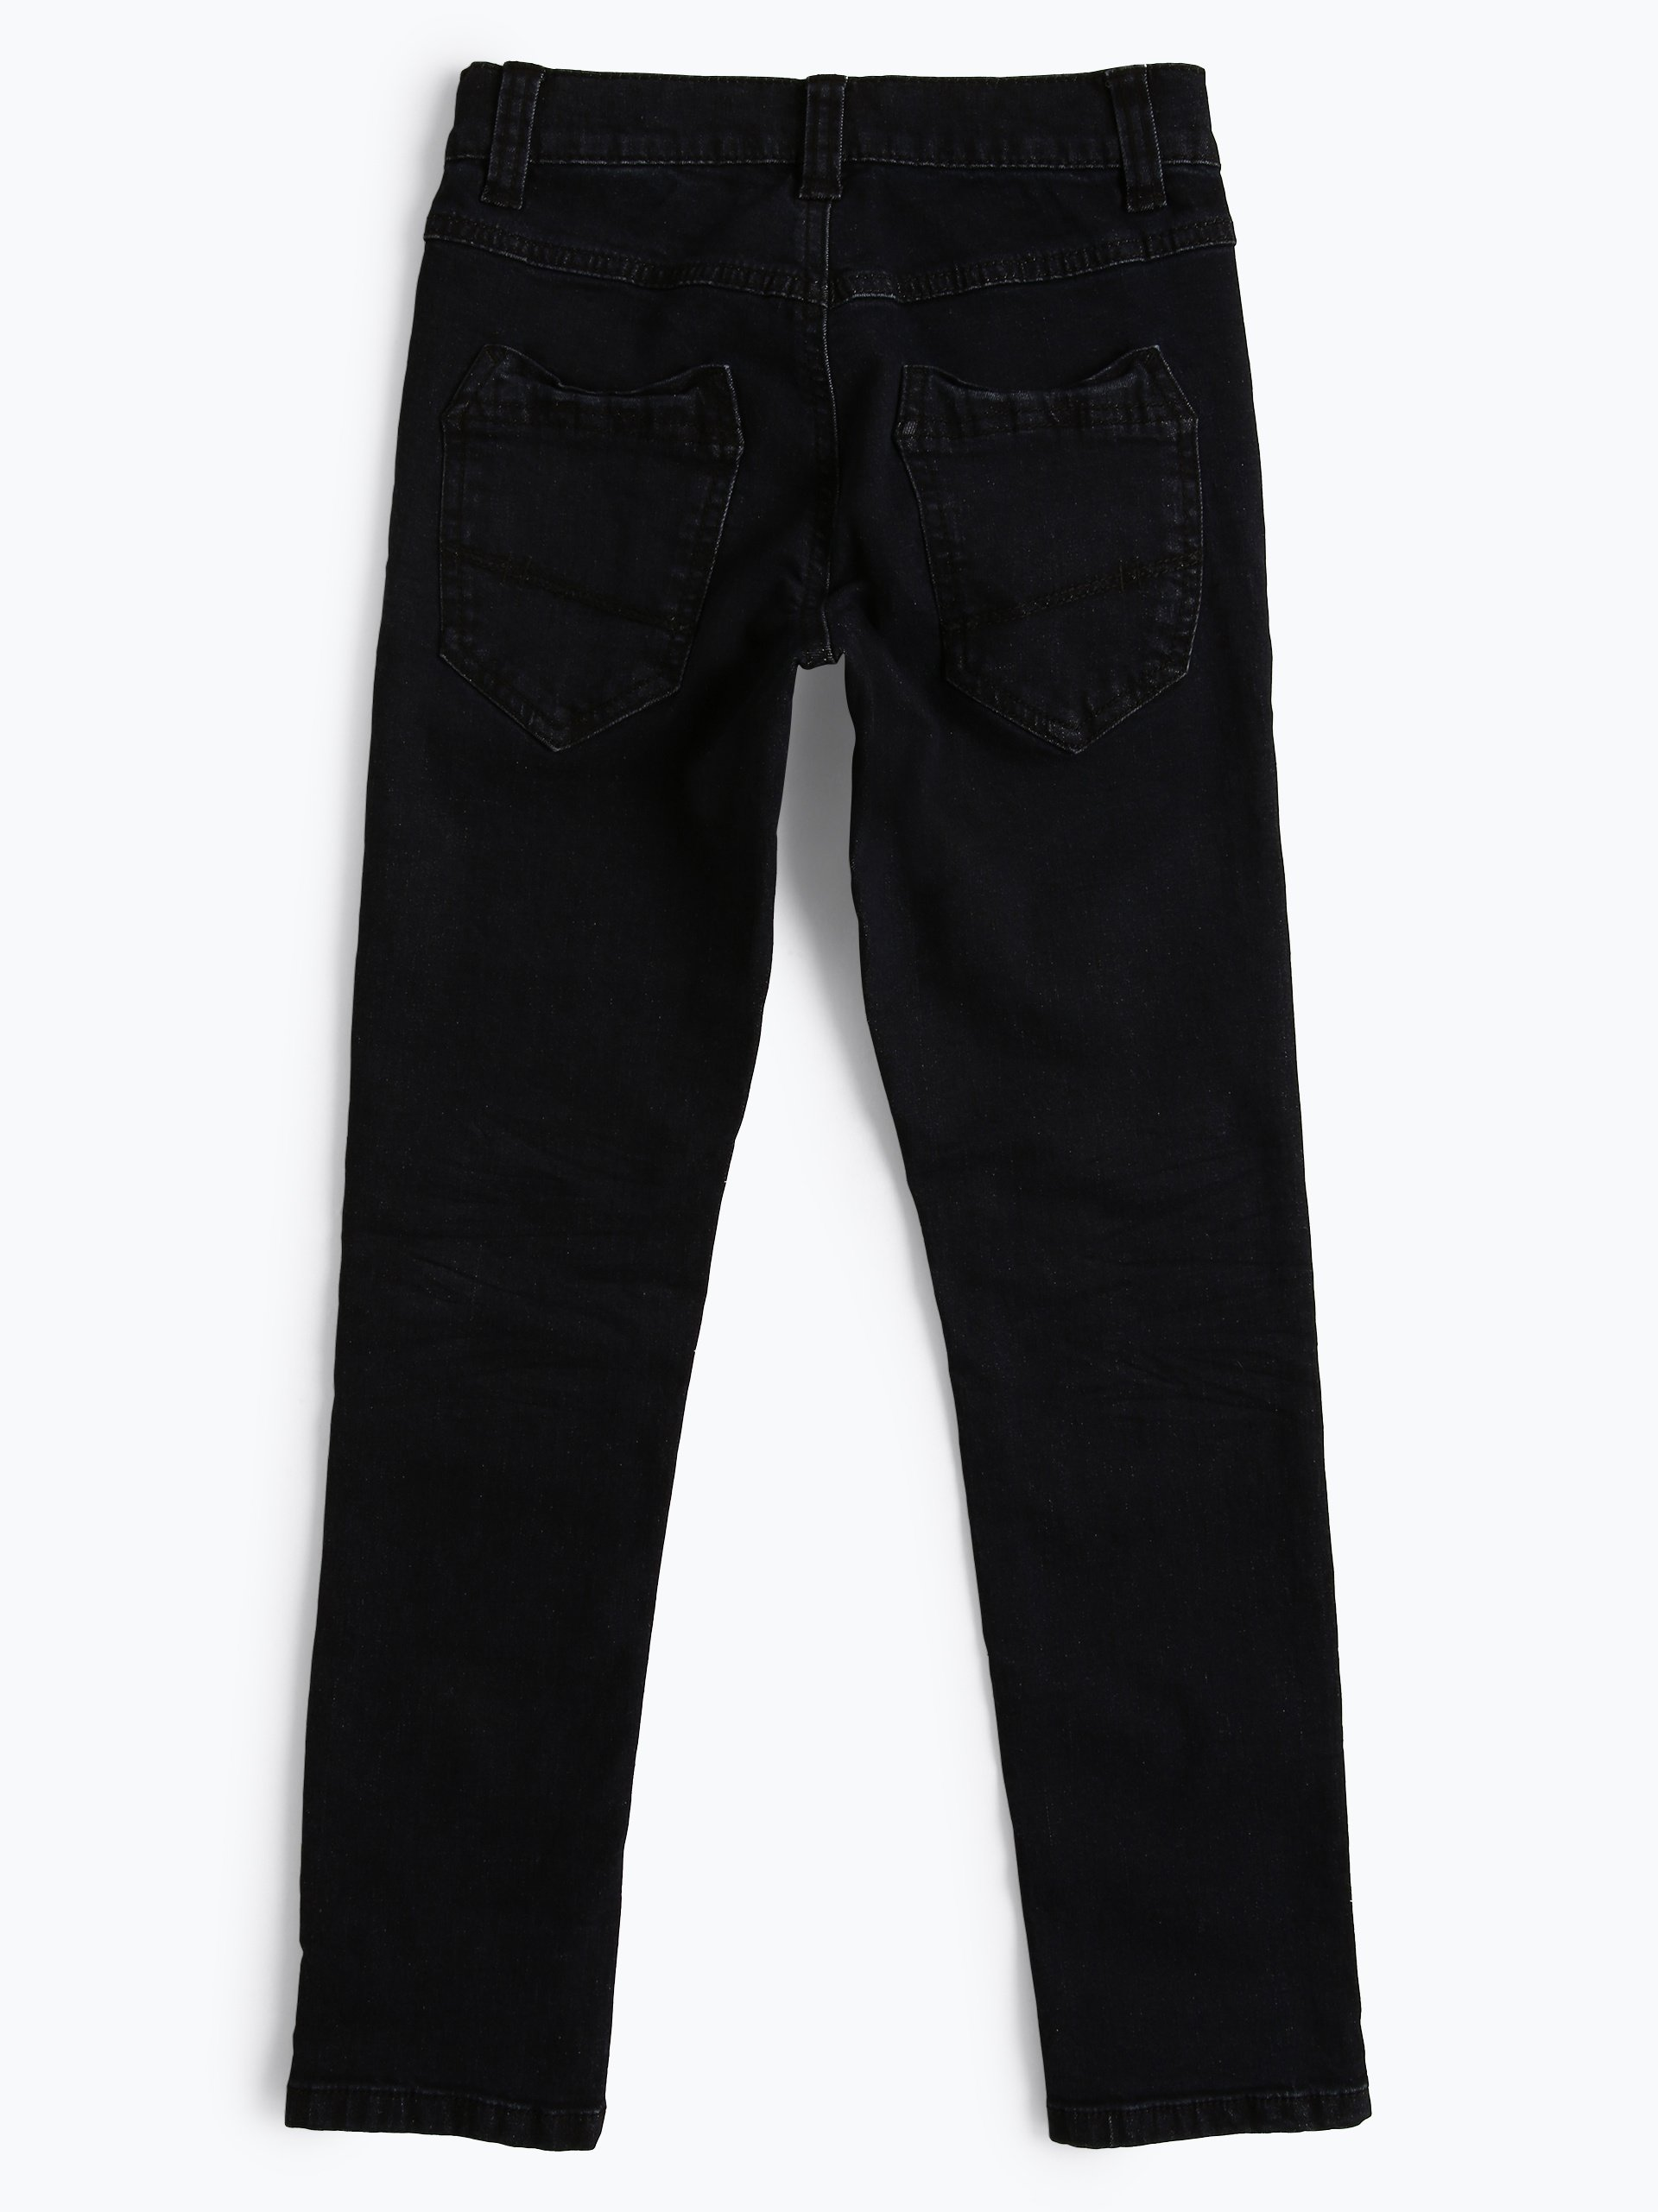 s.Oliver Casual Jungen Jeans Slim Fit Regular - Skinny Seattle